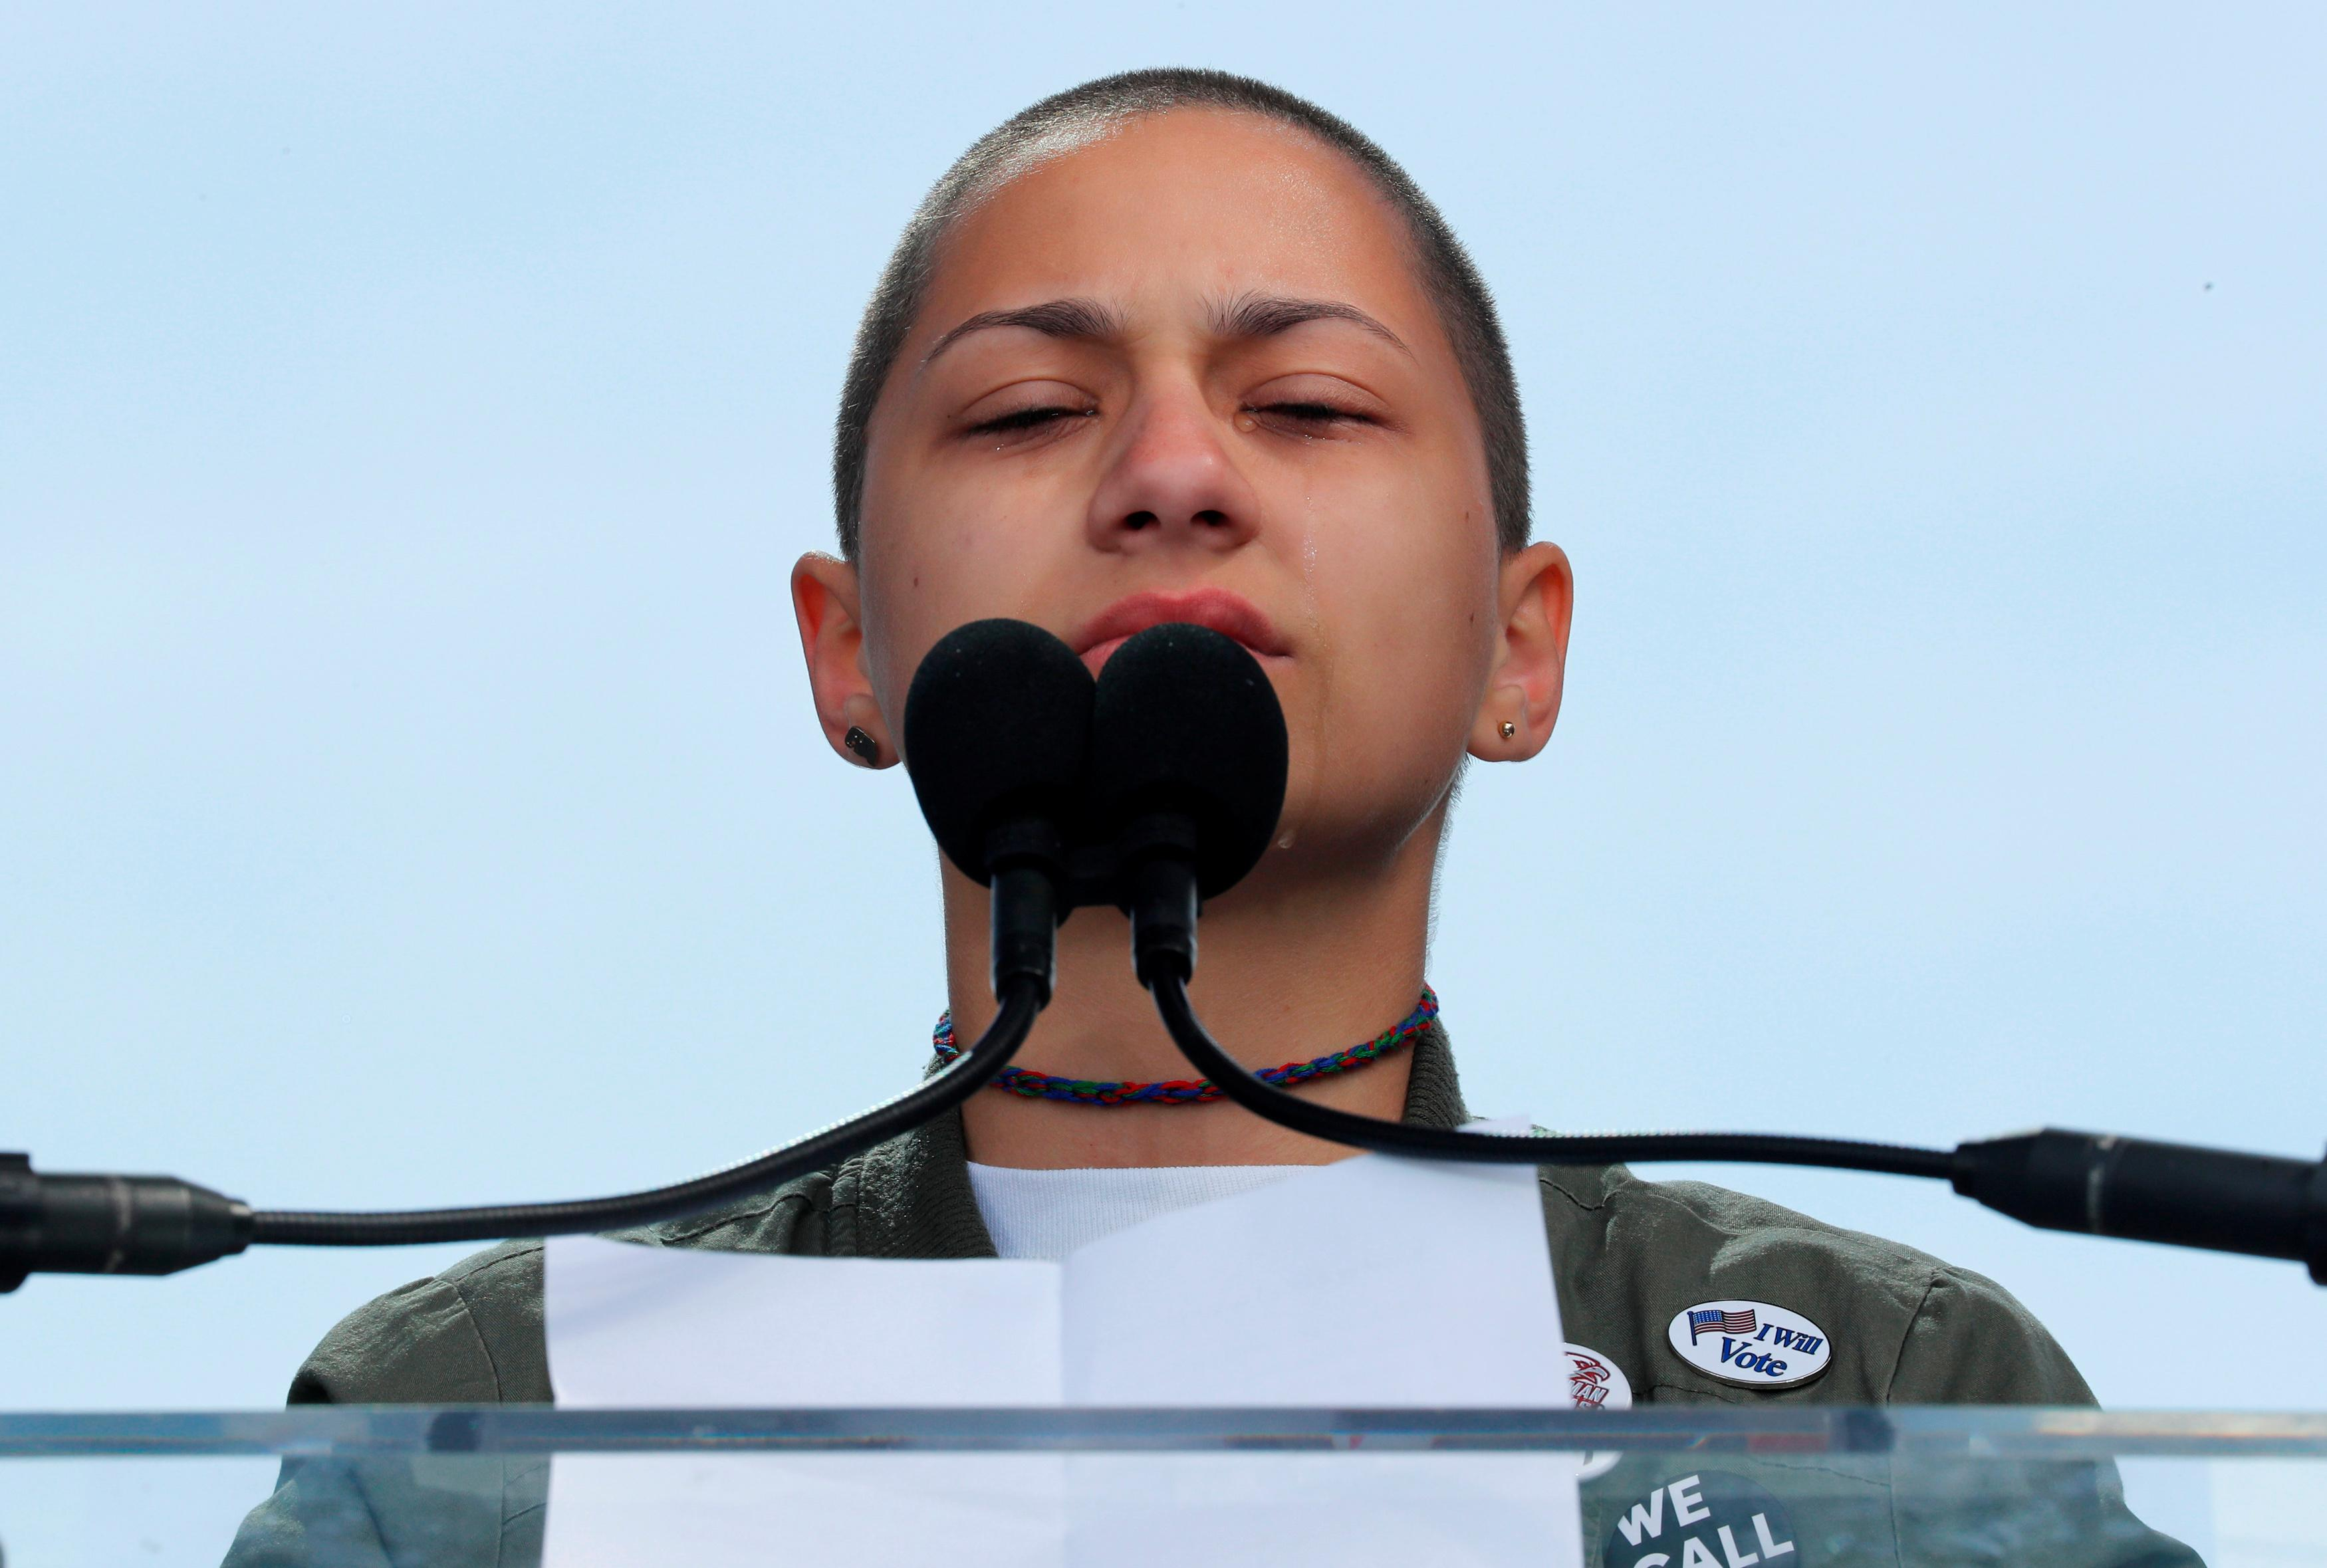 """Emma Gonzalez, a student and shooting survivor from the Marjory Stoneman Douglas High School in Parkland, Florida, cries as she addresses the conclusion of the """"March for Our Lives"""" event demanding gun control after recent school shootings at a rally in Washington, U.S., March 24, 2018. REUTERS/Jonathan Ernst     TPX IMAGES OF THE DAY"""